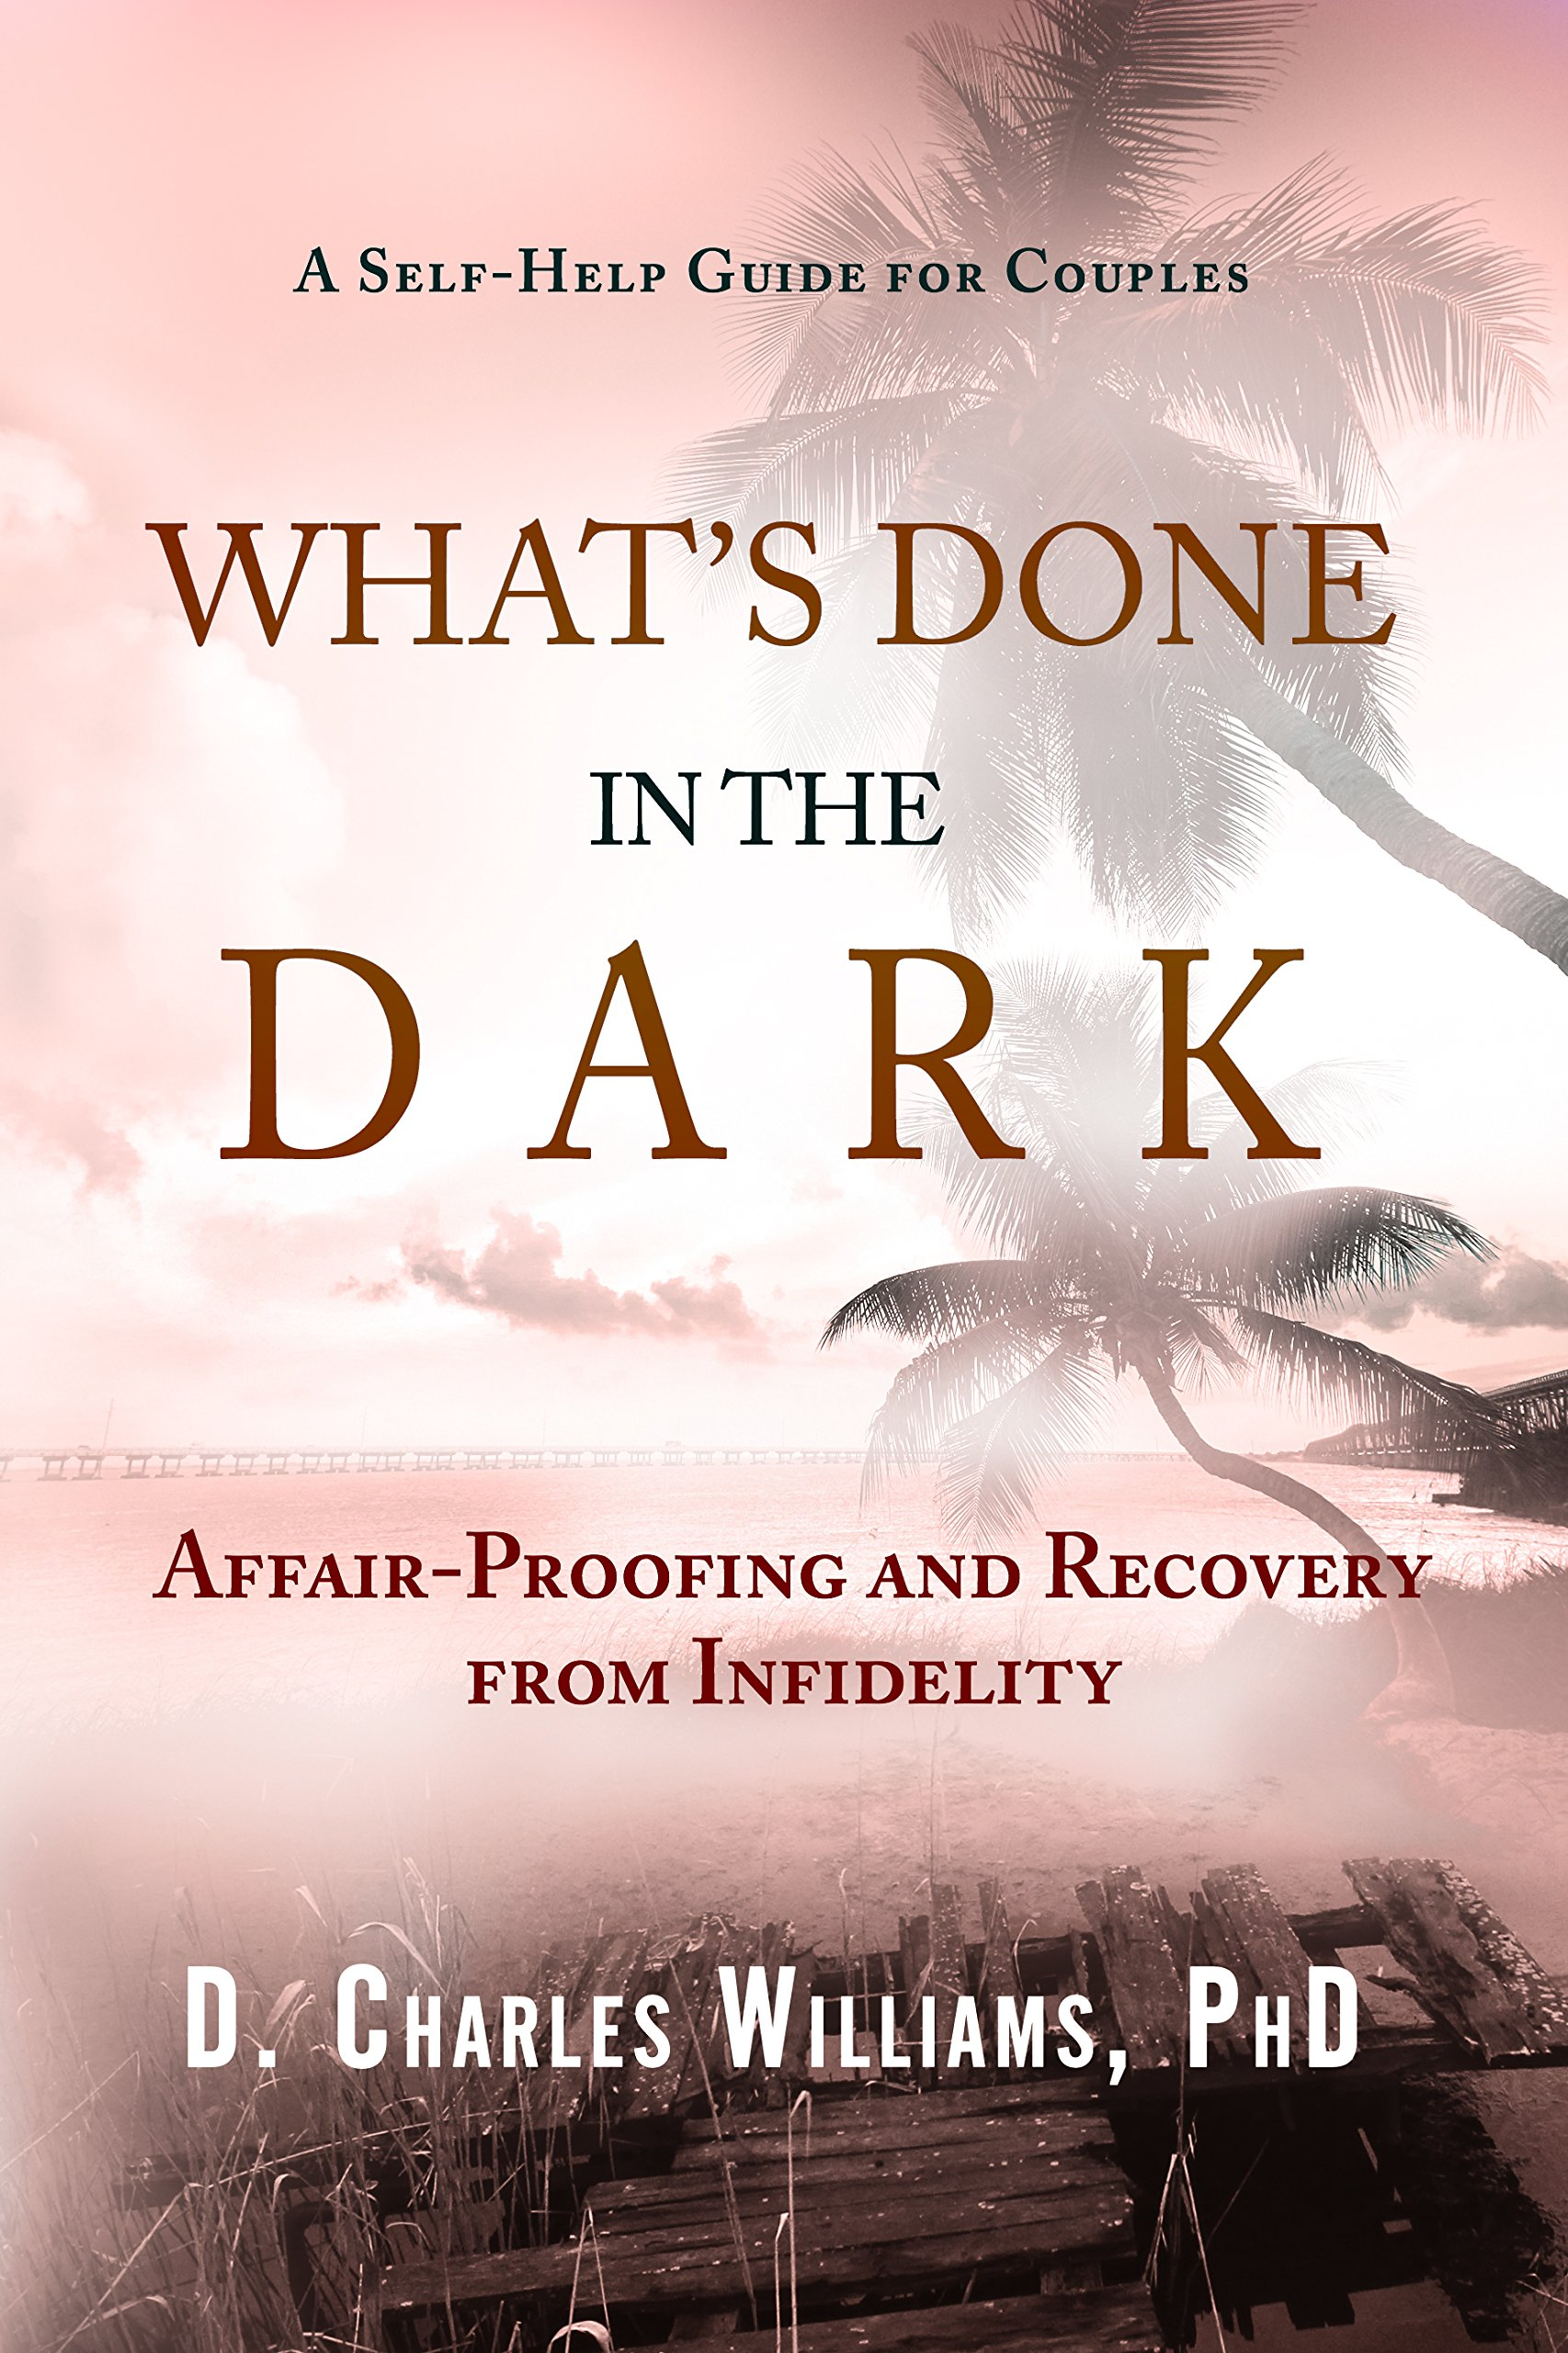 Read Online What's Done In The Dark: Affair-Proofing and Recovery from Infidelity - A Self-Help Guide for Couples pdf epub